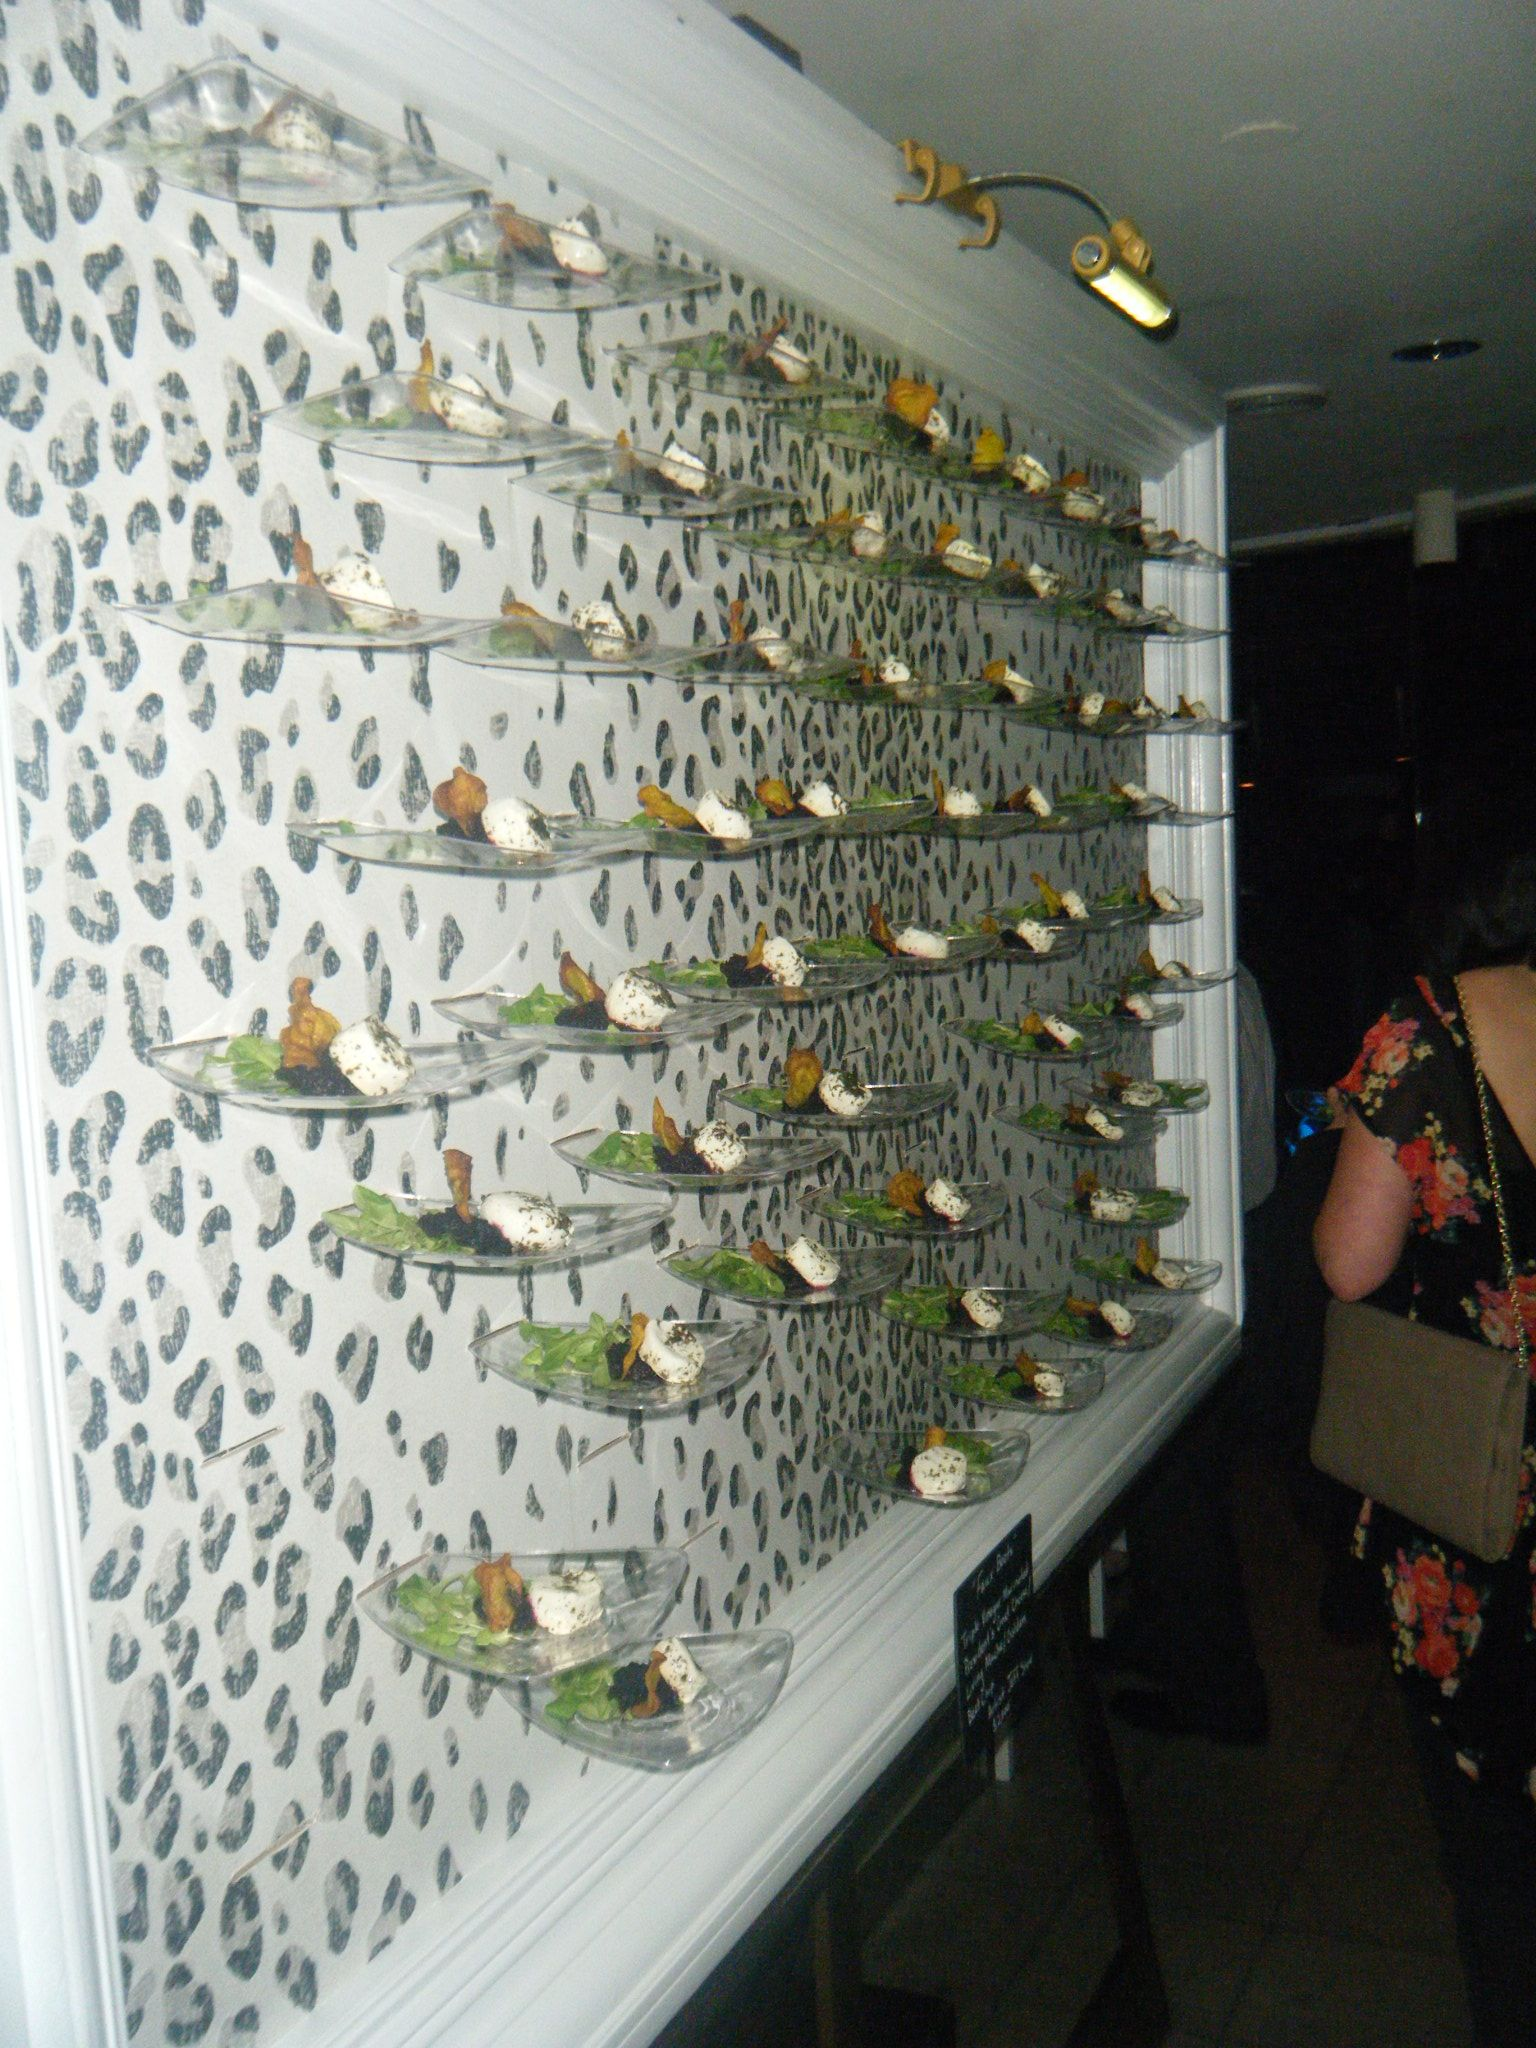 Plate Wall Of Salads Catersource 2012 Catering By